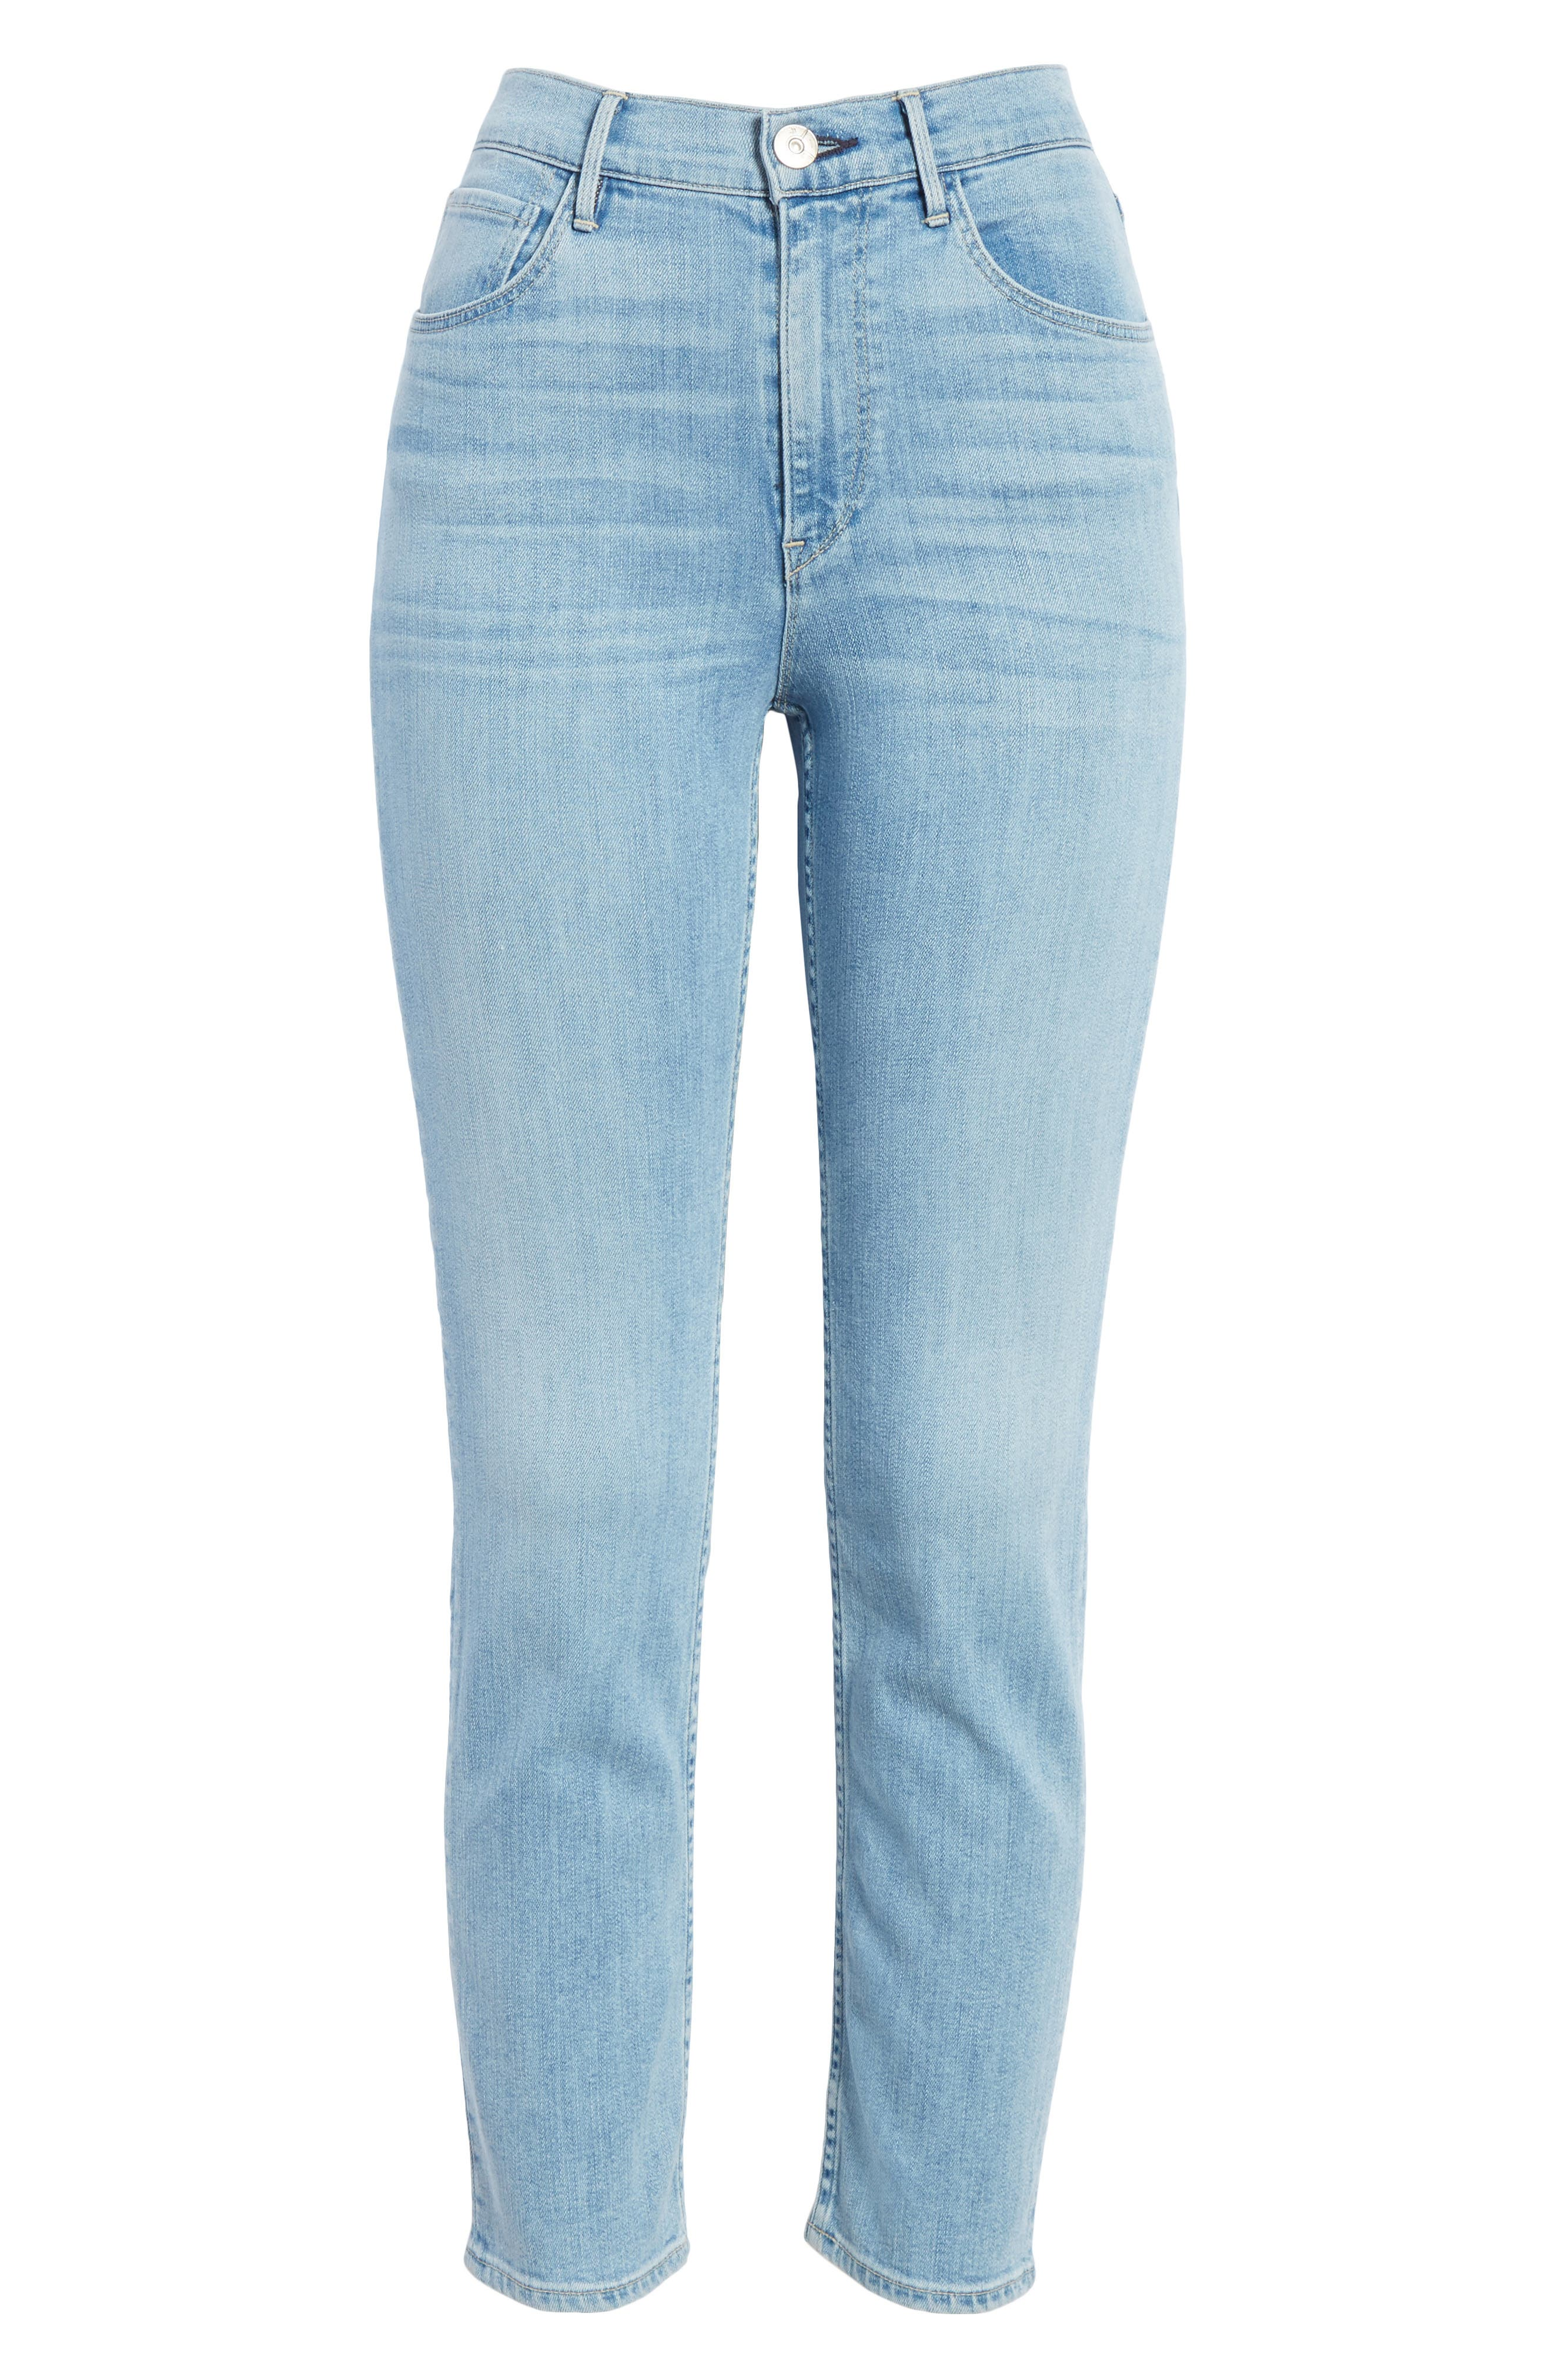 W4 Colette Crop Skinny Jeans,                             Alternate thumbnail 6, color,                             CARLO